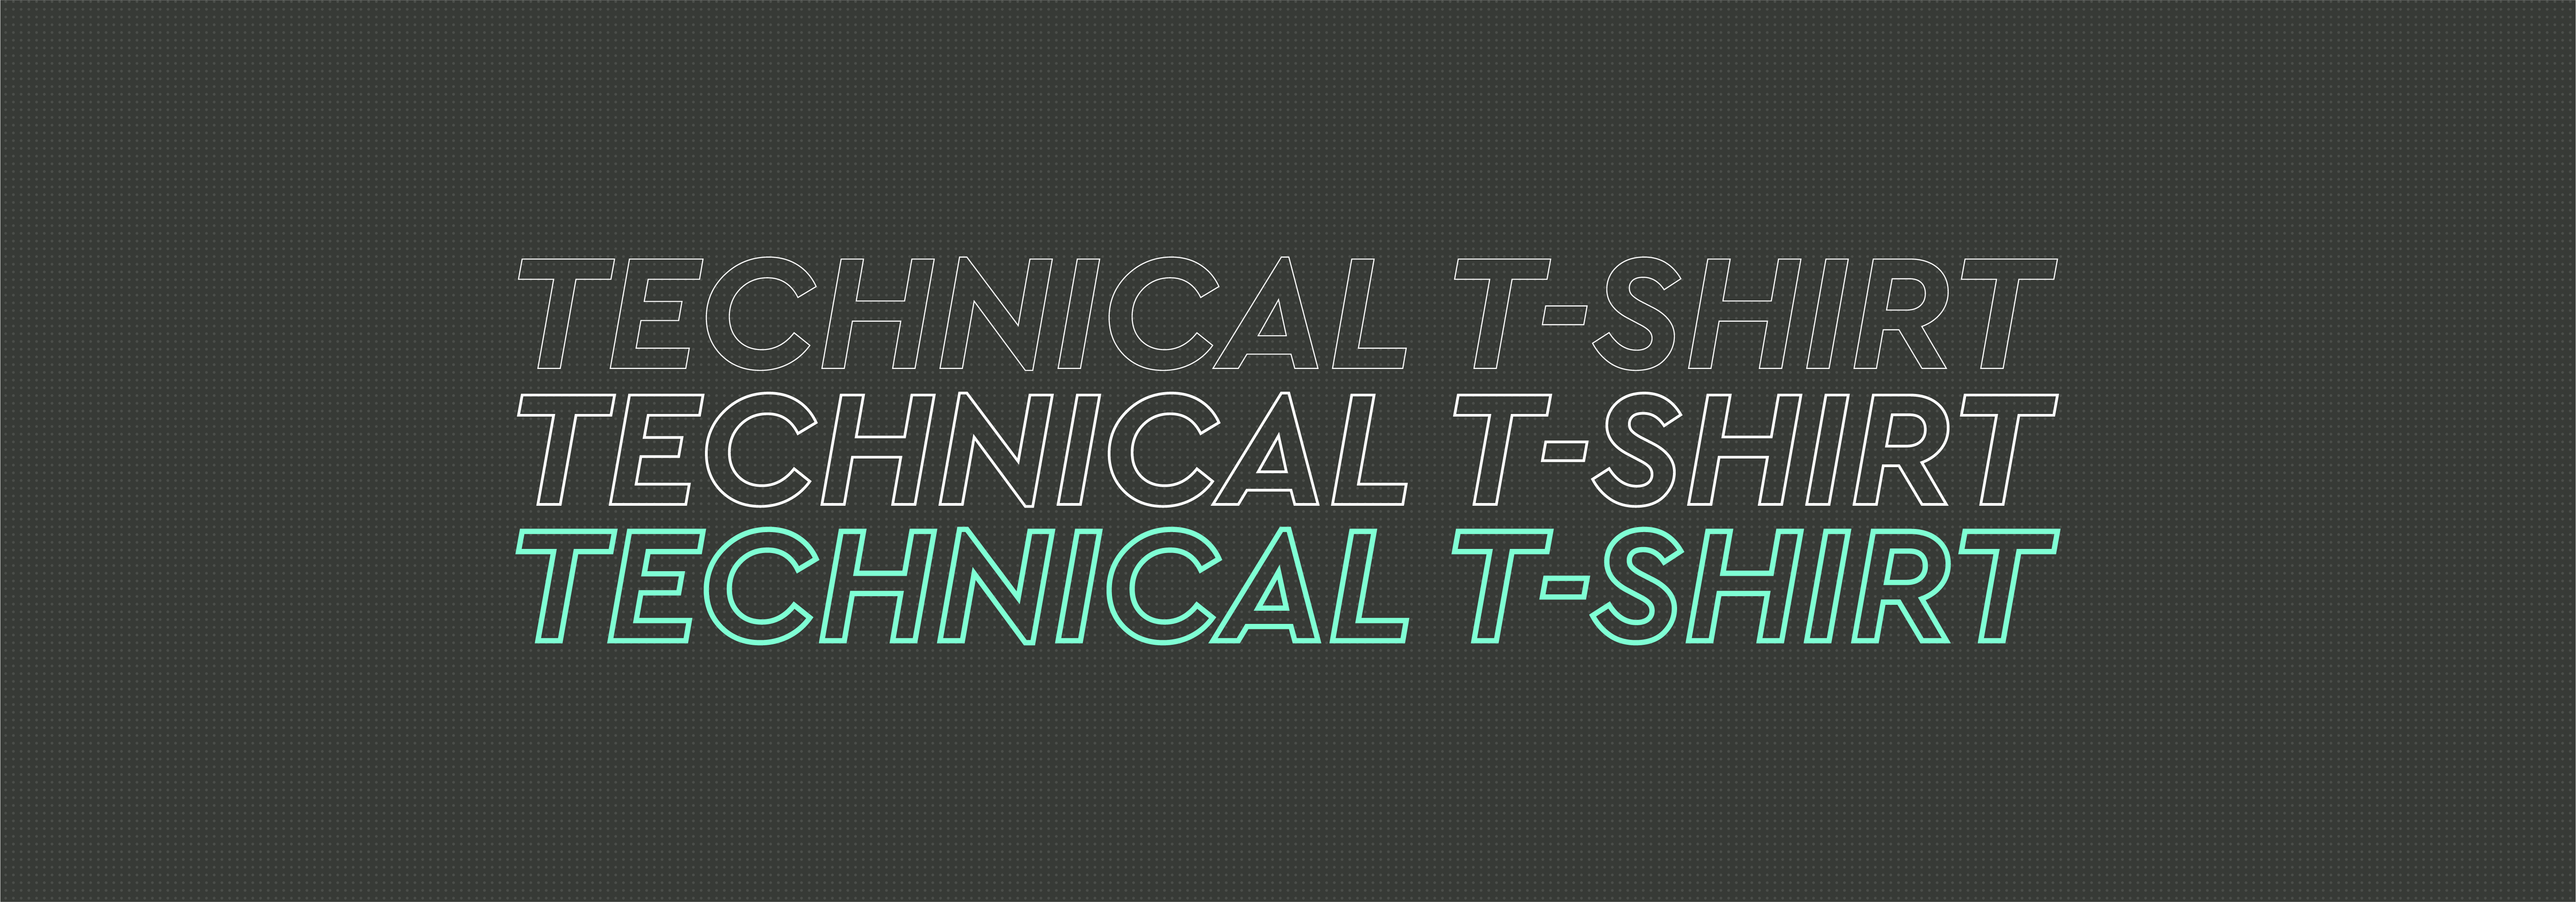 Technical T-Shirt